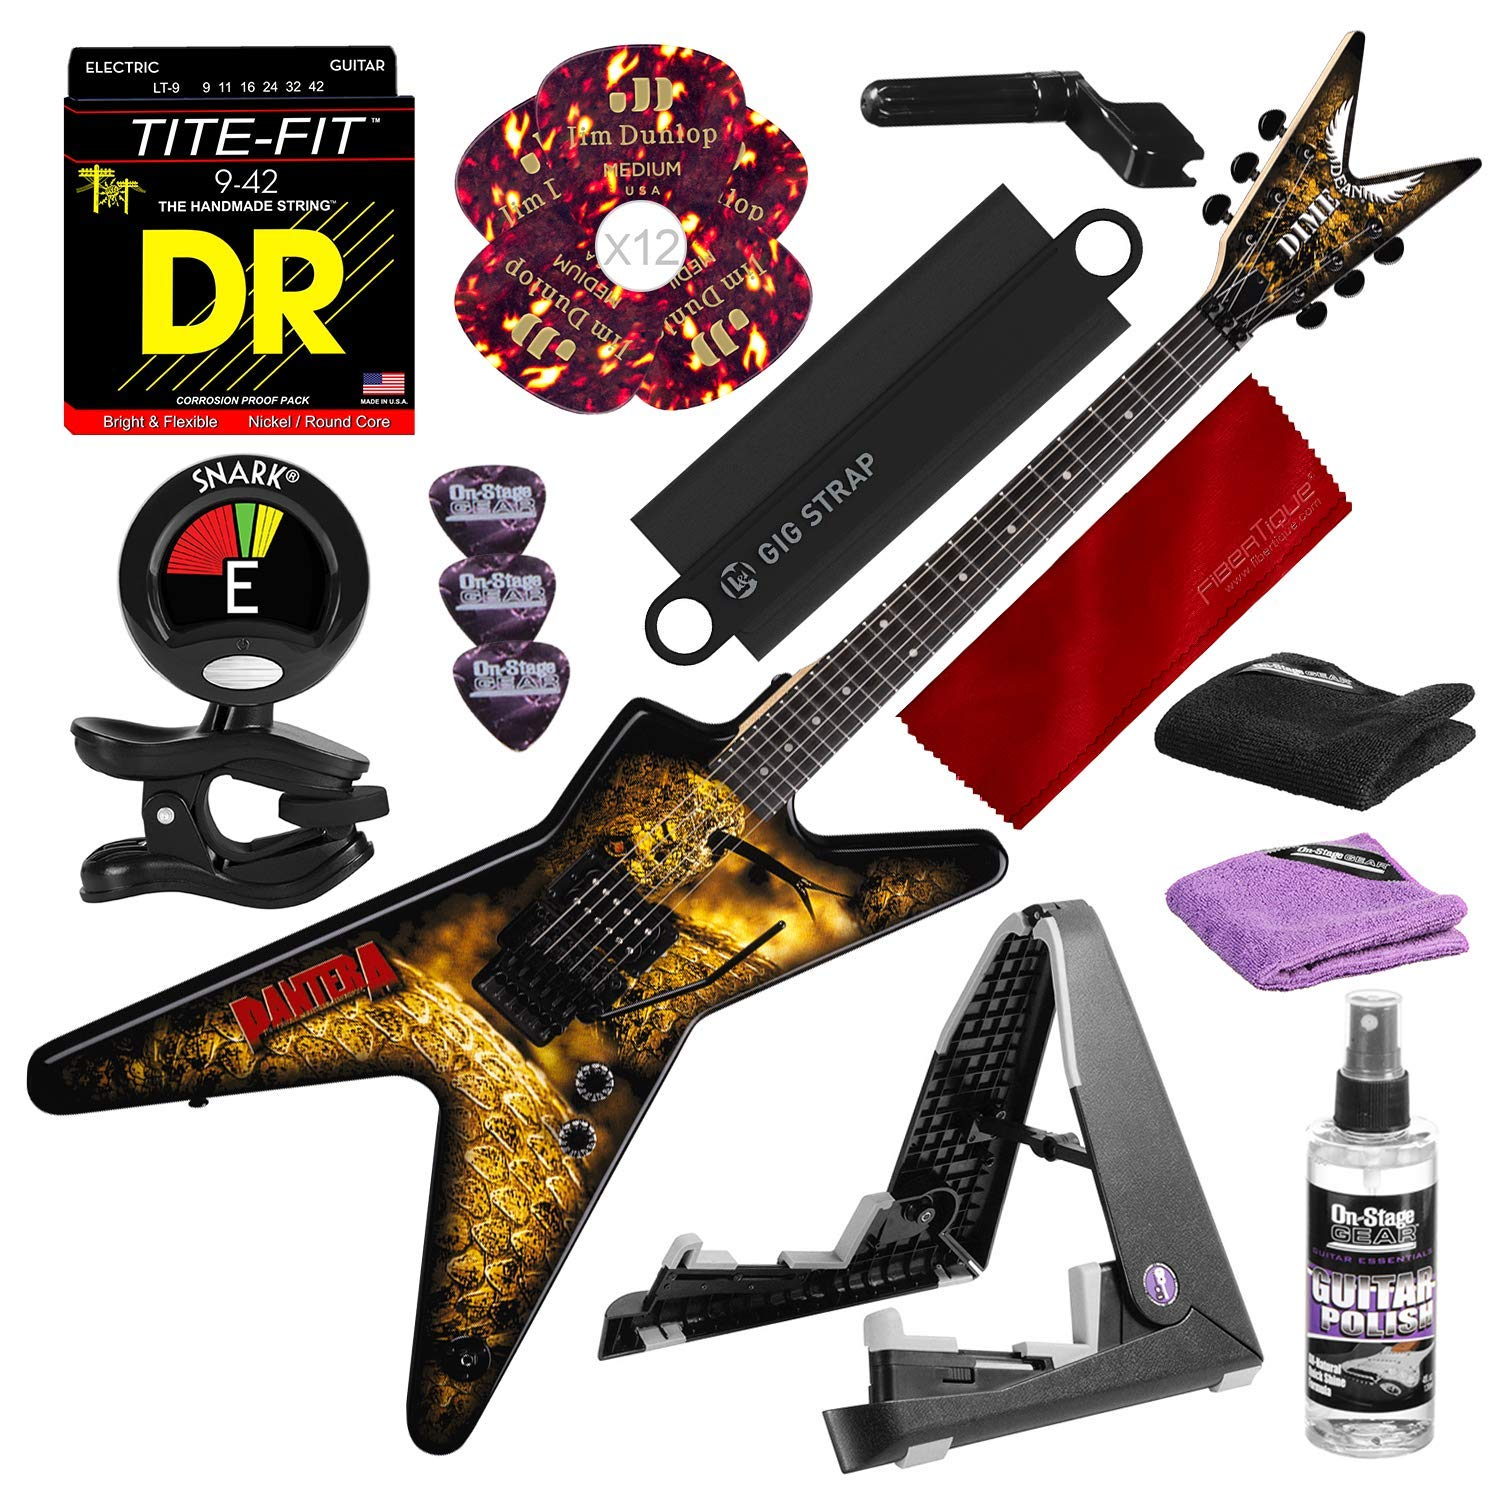 Cheap Dean Dimebag Pantera Southern Trendkill ML Electric Guitar with Guitar Stand Tuner Strings Picks and Complete Accessory Bundle Black Friday & Cyber Monday 2019